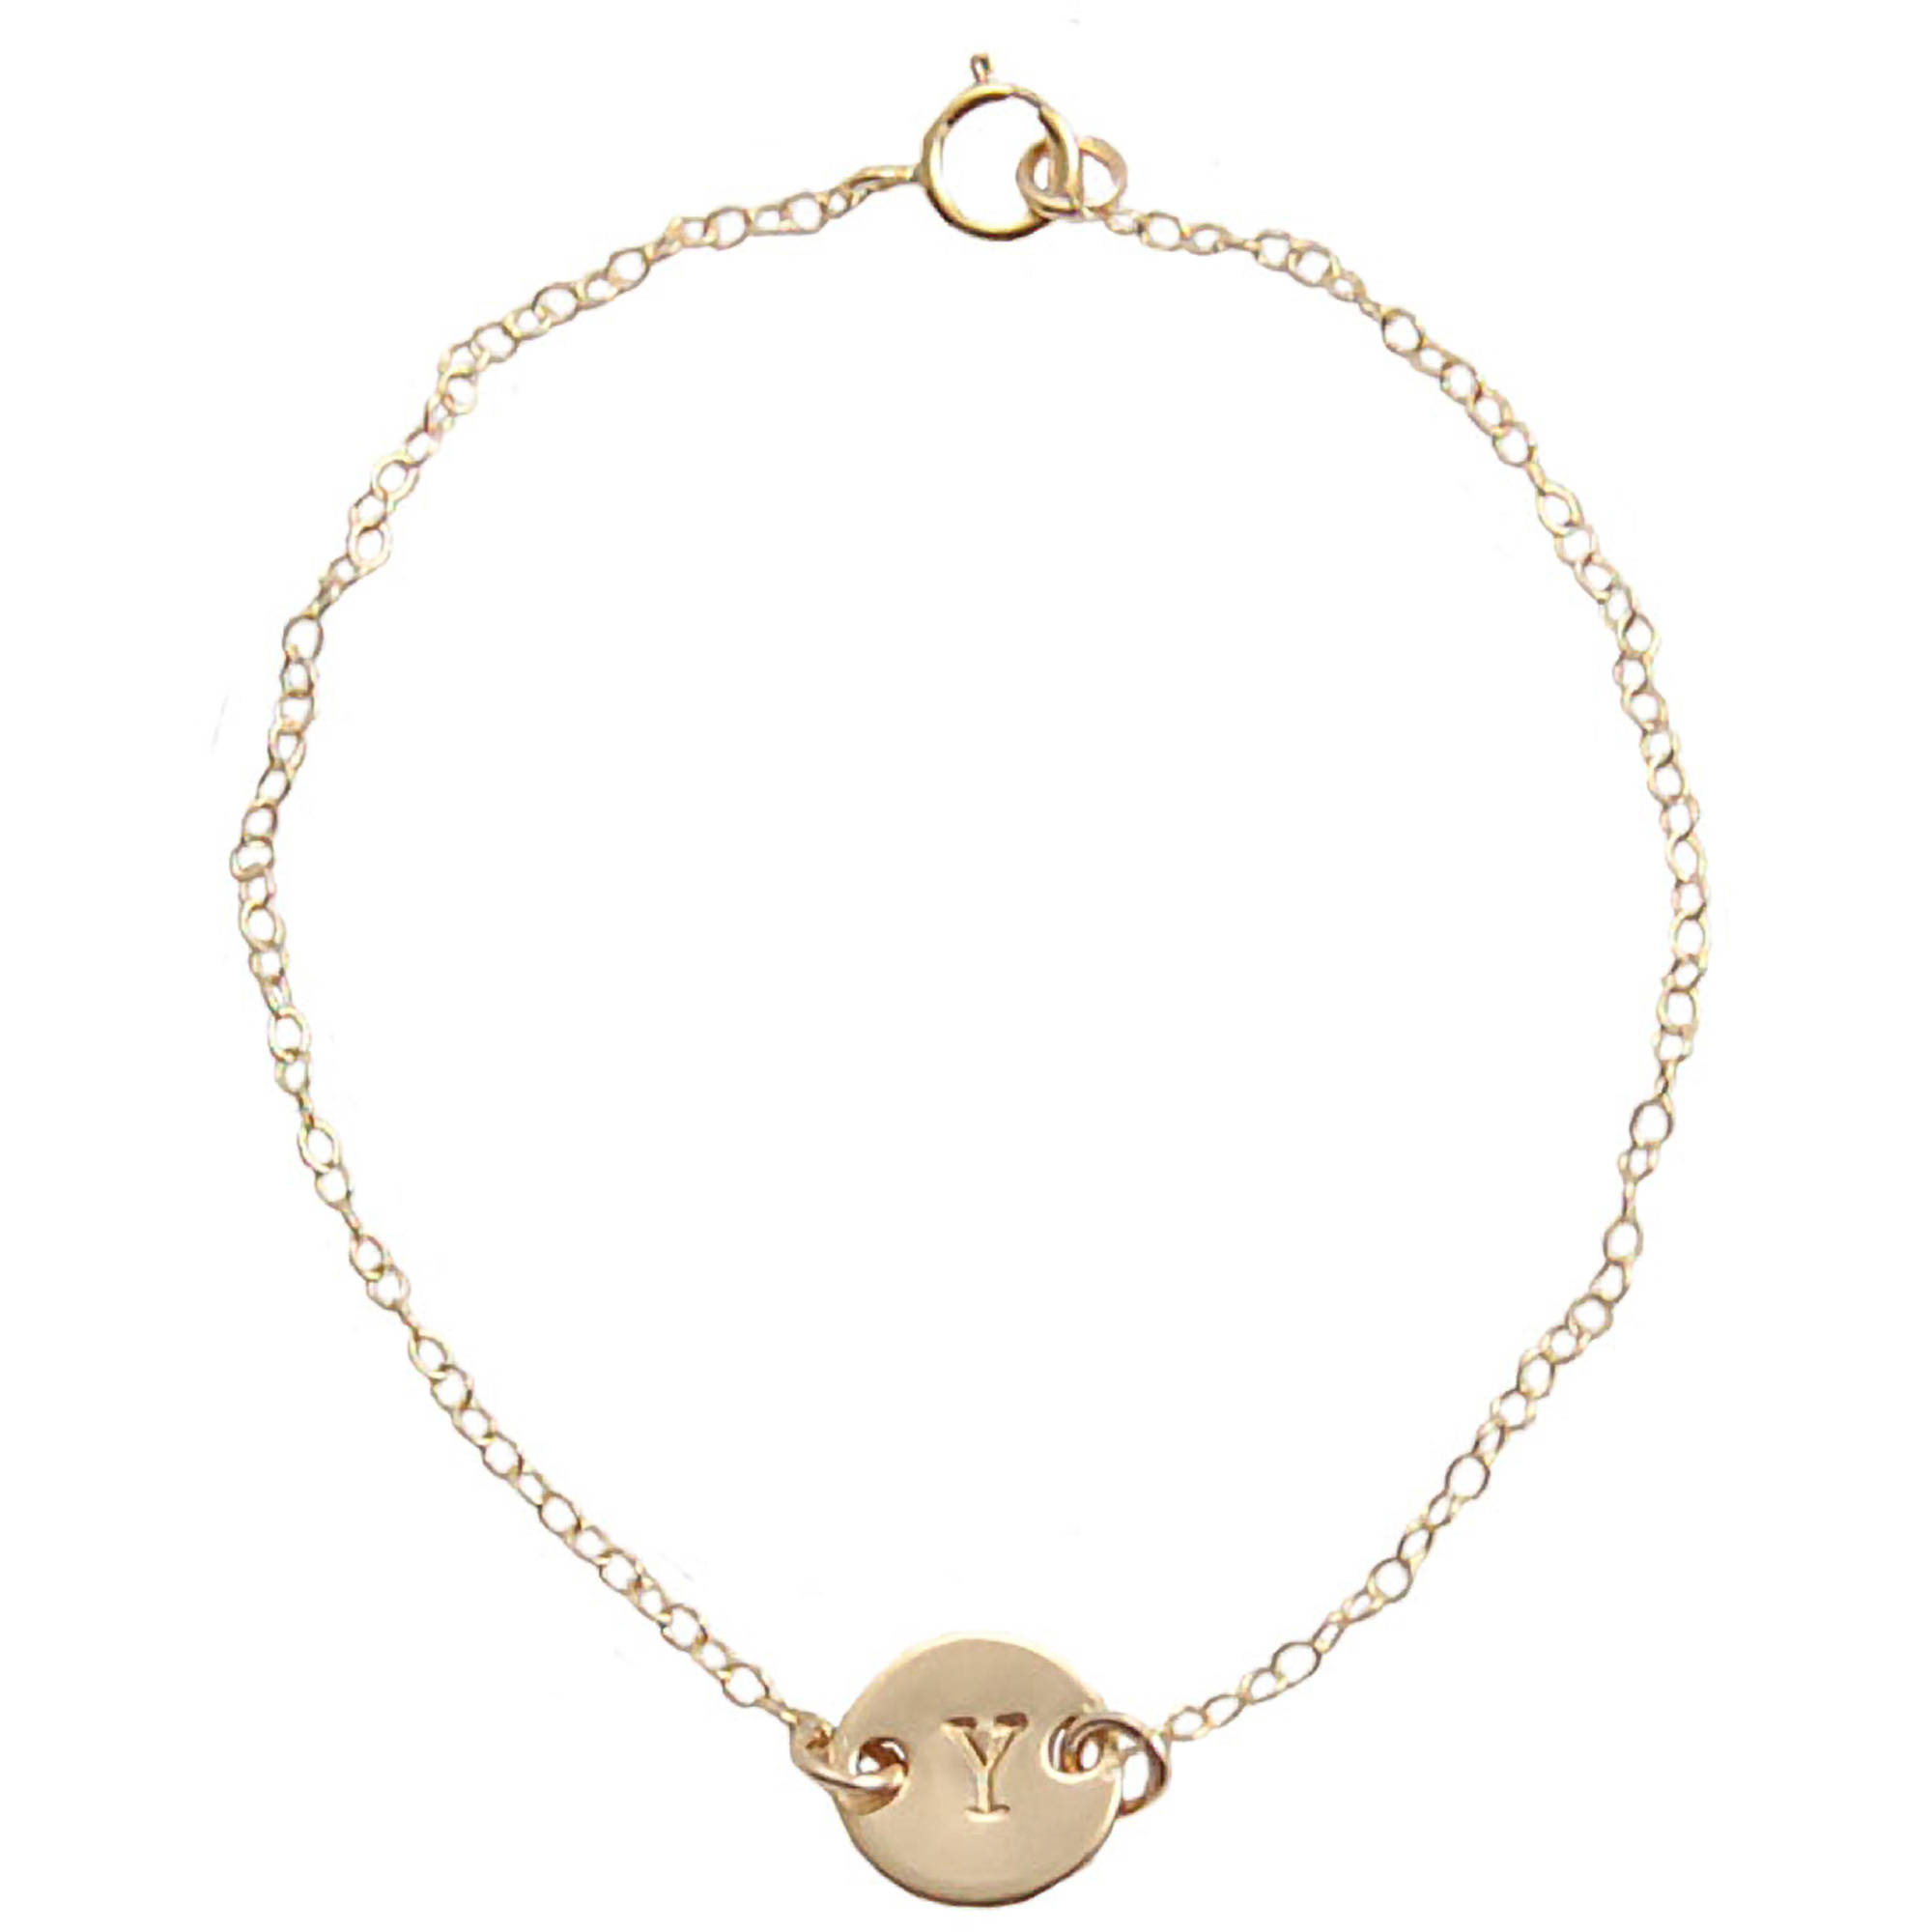 Miss Zoe by Calinana Initial Hand Stamped Bracelet, Gold